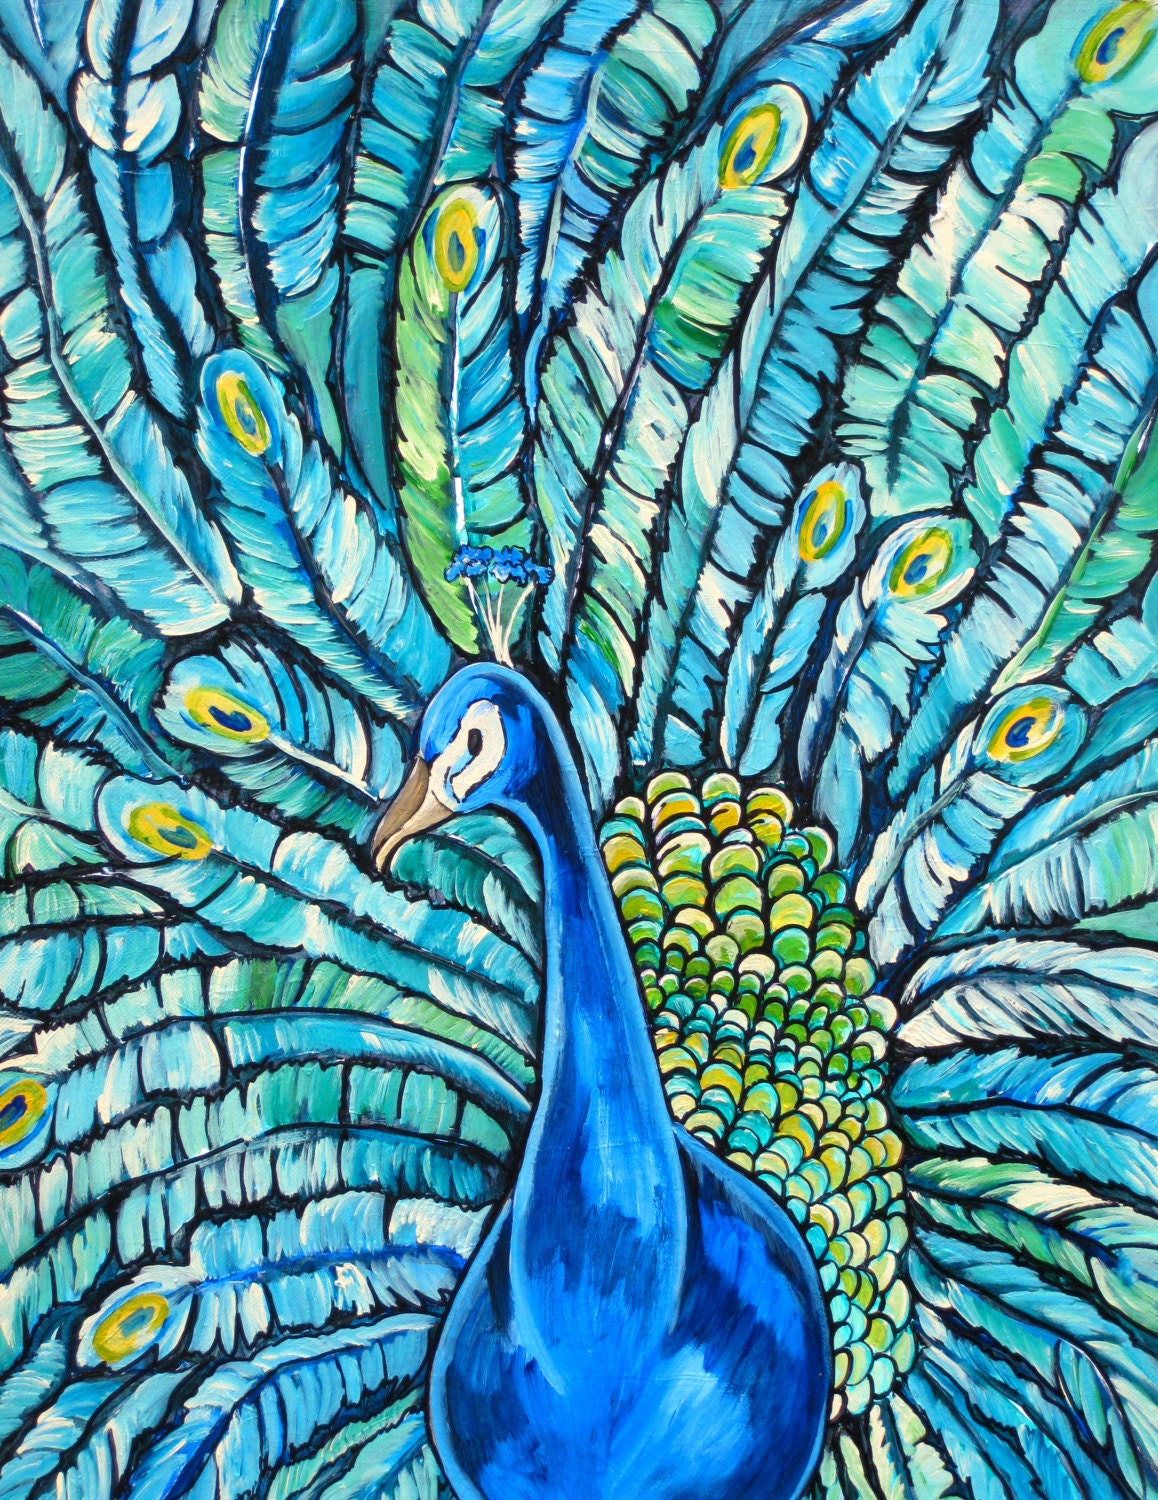 Peacock feather paintings - photo#54